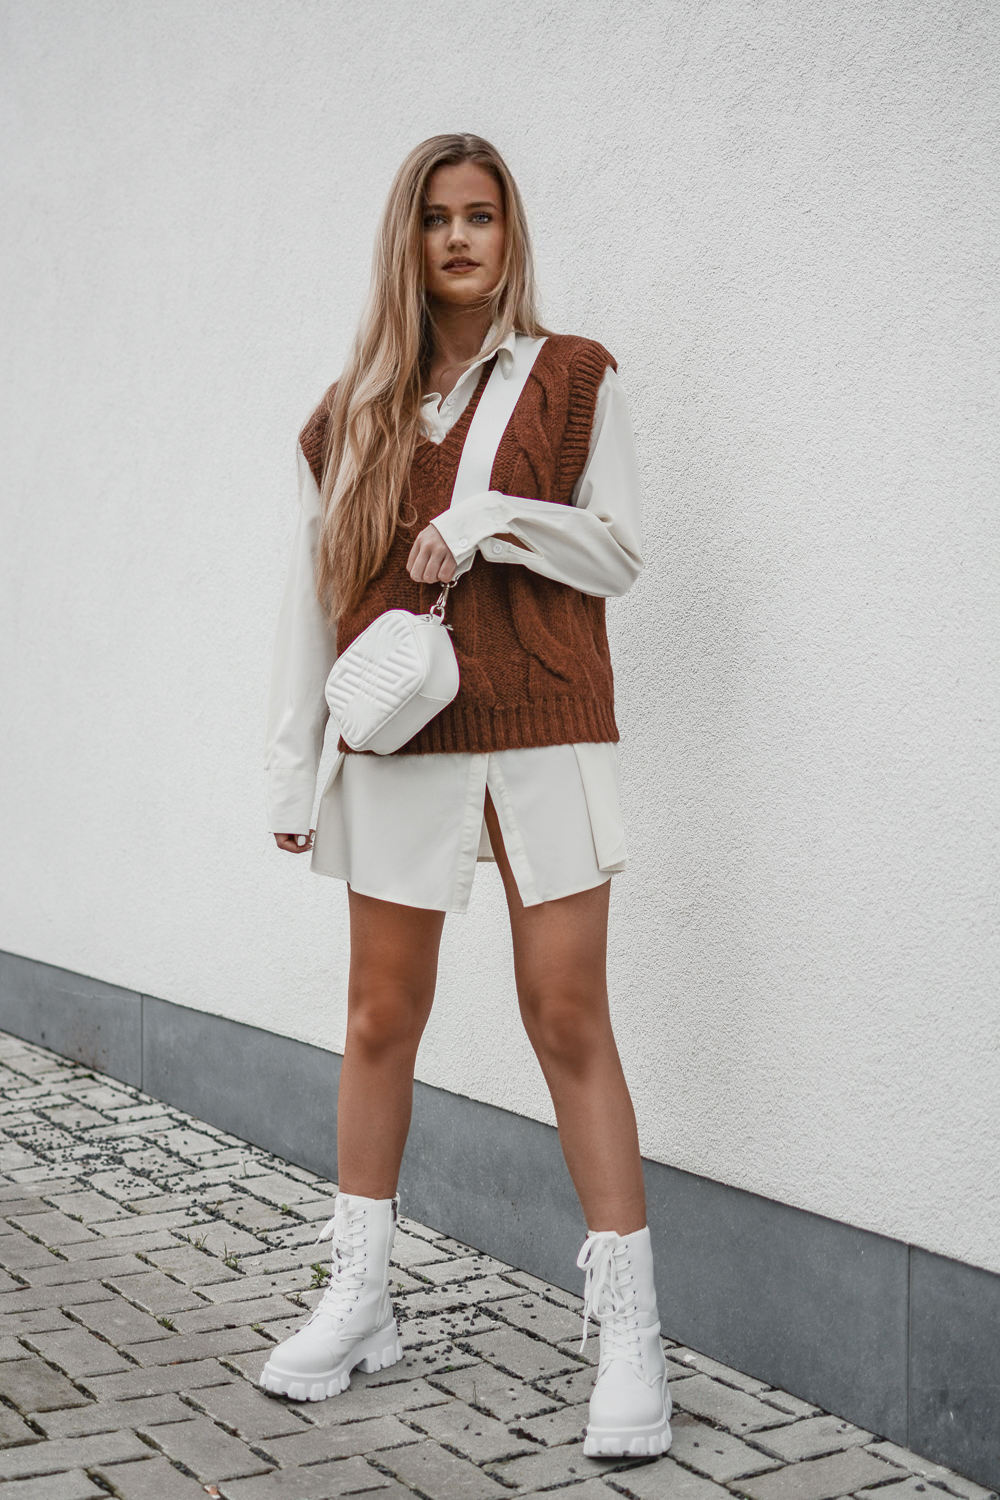 Outfit: Preppy Chic